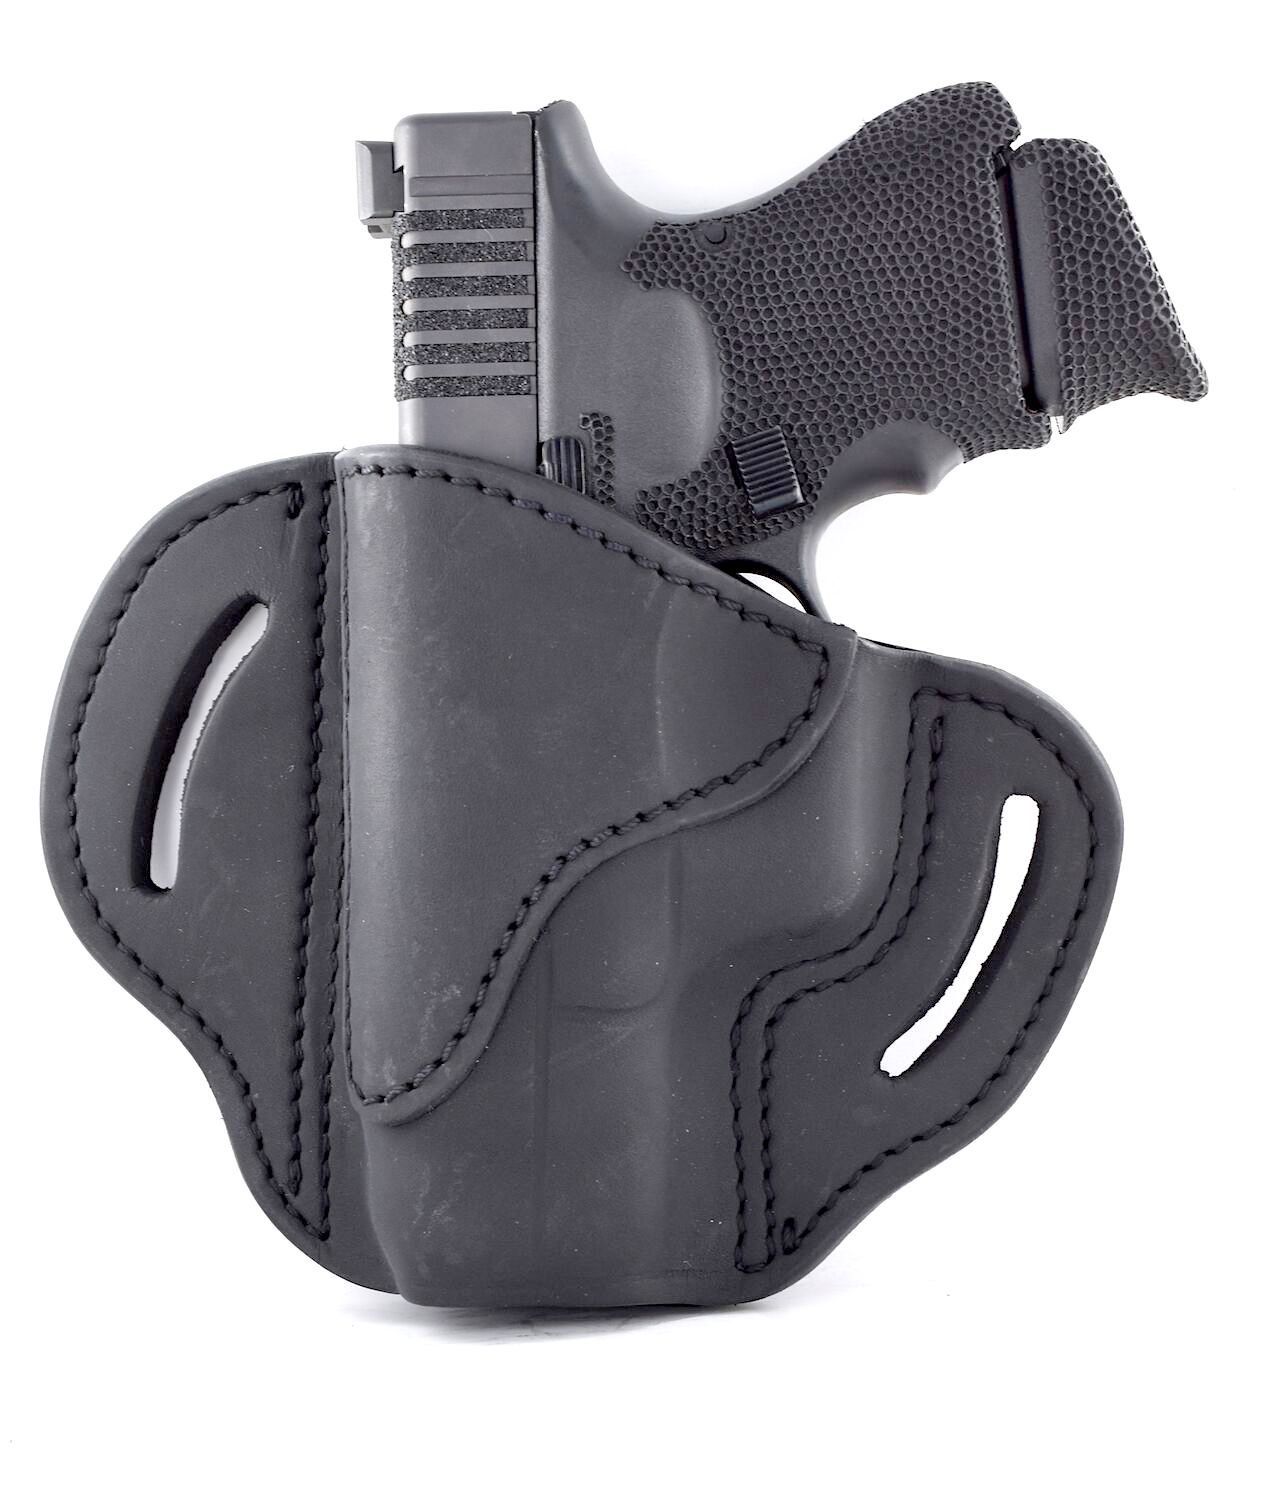 1791 Gunleather Glock 19 Holster - Right Hand OWB G19 Leather Holster for Belts - Fits Glock 19, 23, 26, 27, H&K VP40 and Springfield XDS (BH2.1)